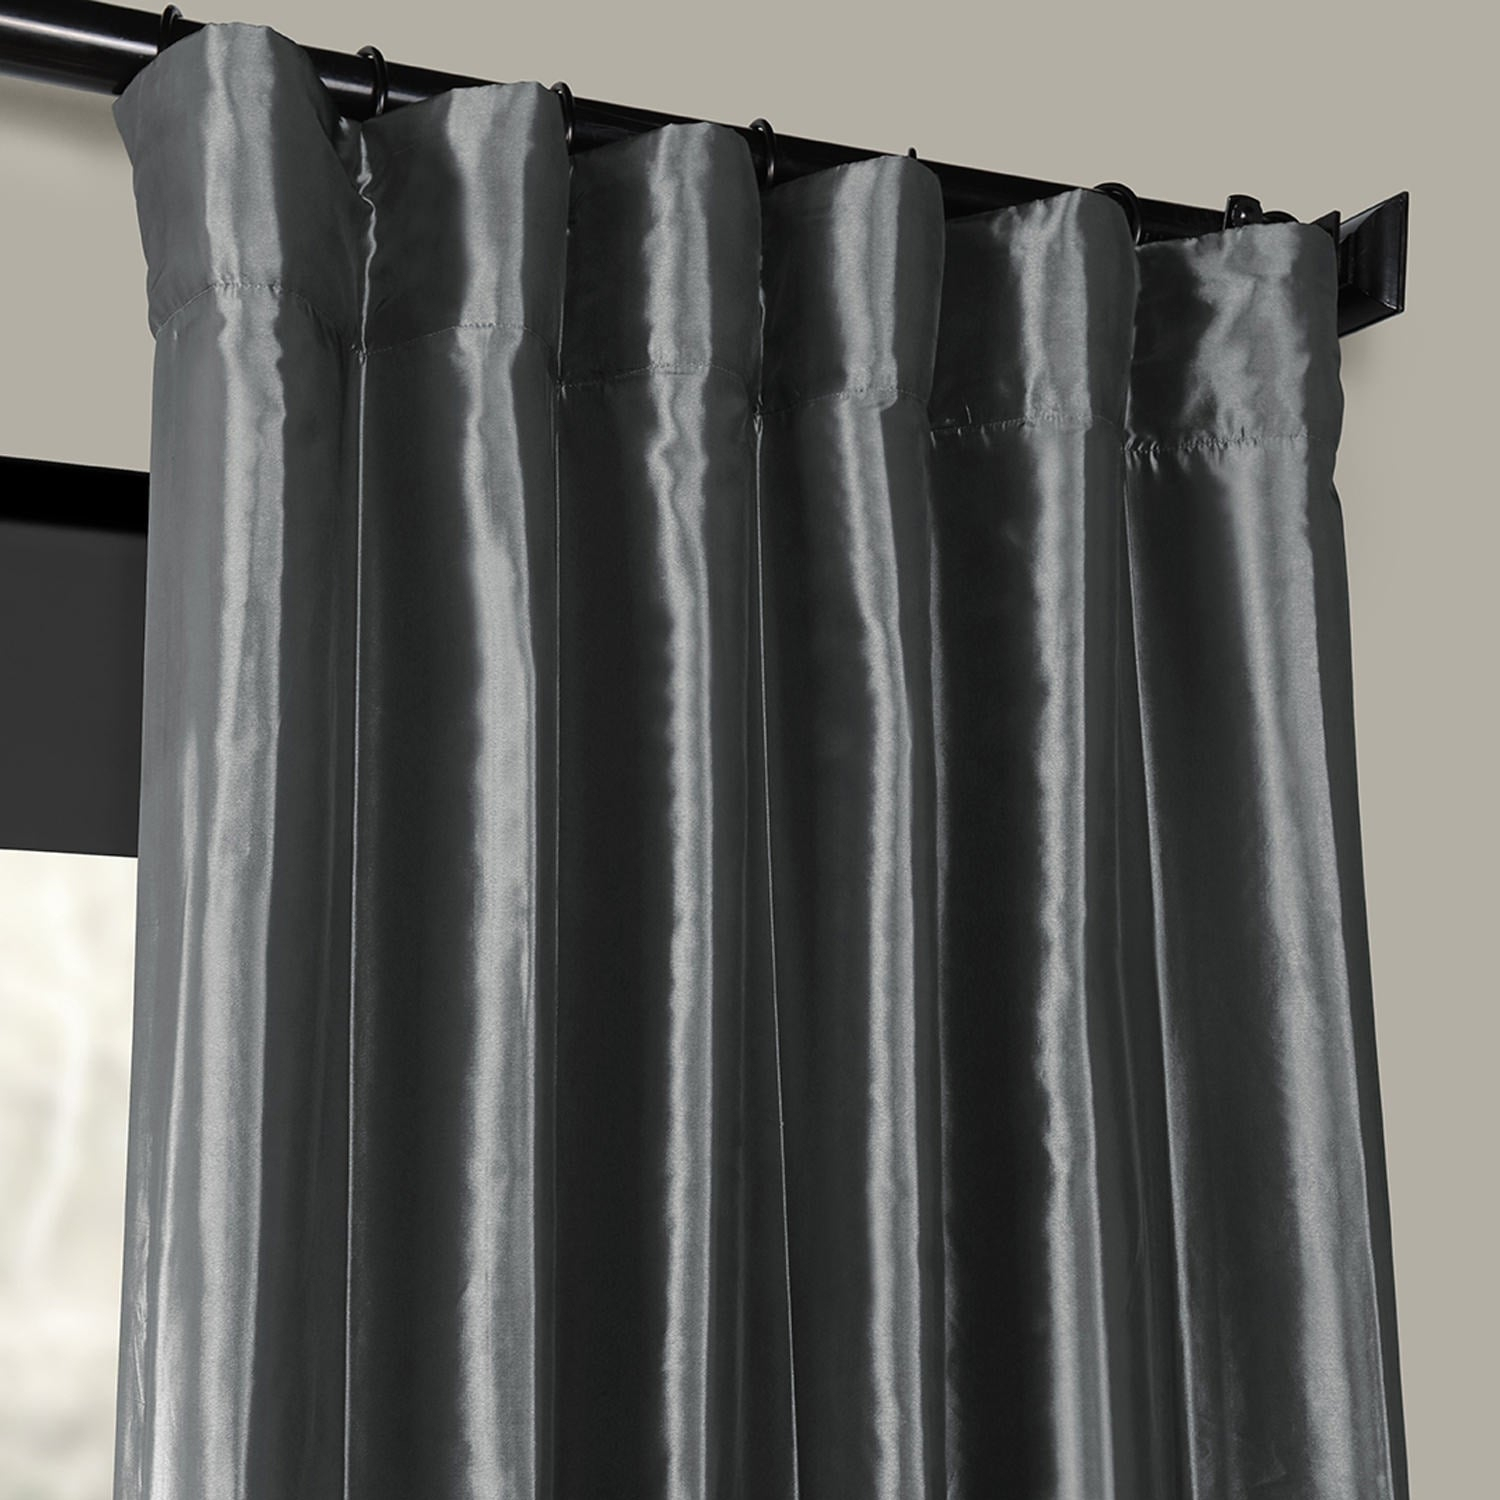 Exclusive Fabrics Solid Faux Silk Taffeta Graphite Single Curtain Panel With Solid Faux Silk Taffeta Graphite Single Curtain Panels (View 11 of 30)